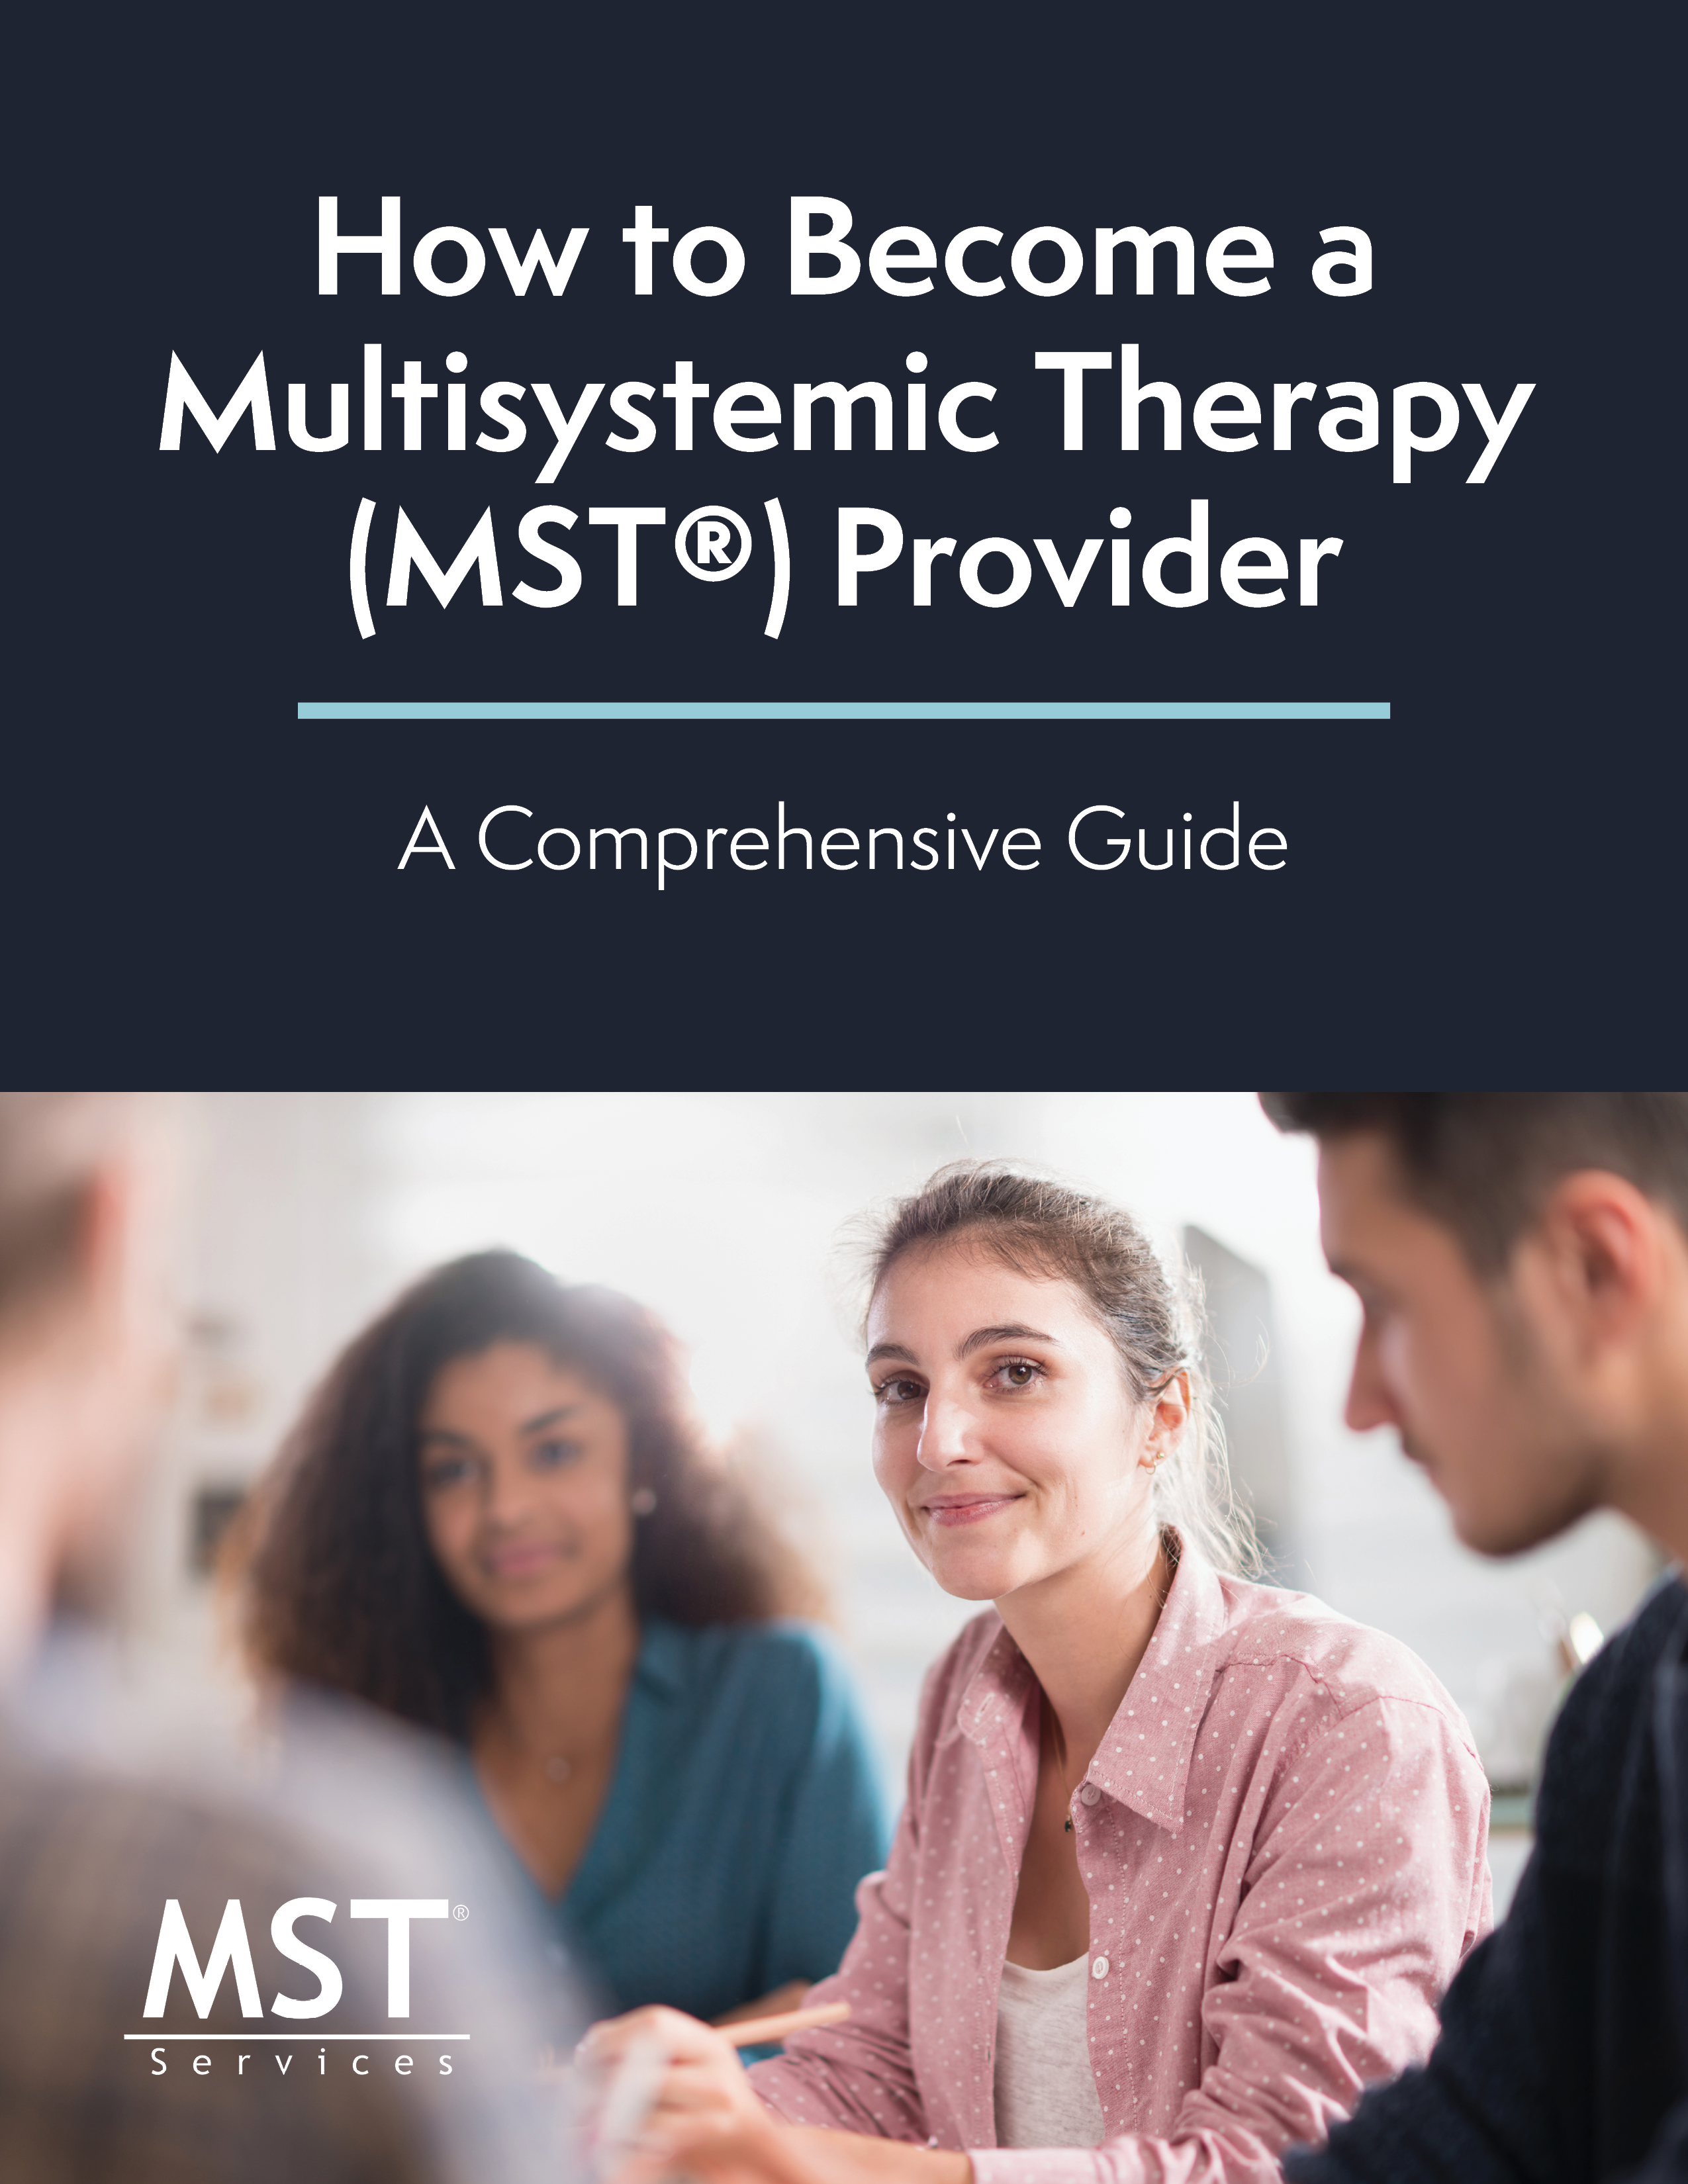 How to Become an MST Provider Thumbnail